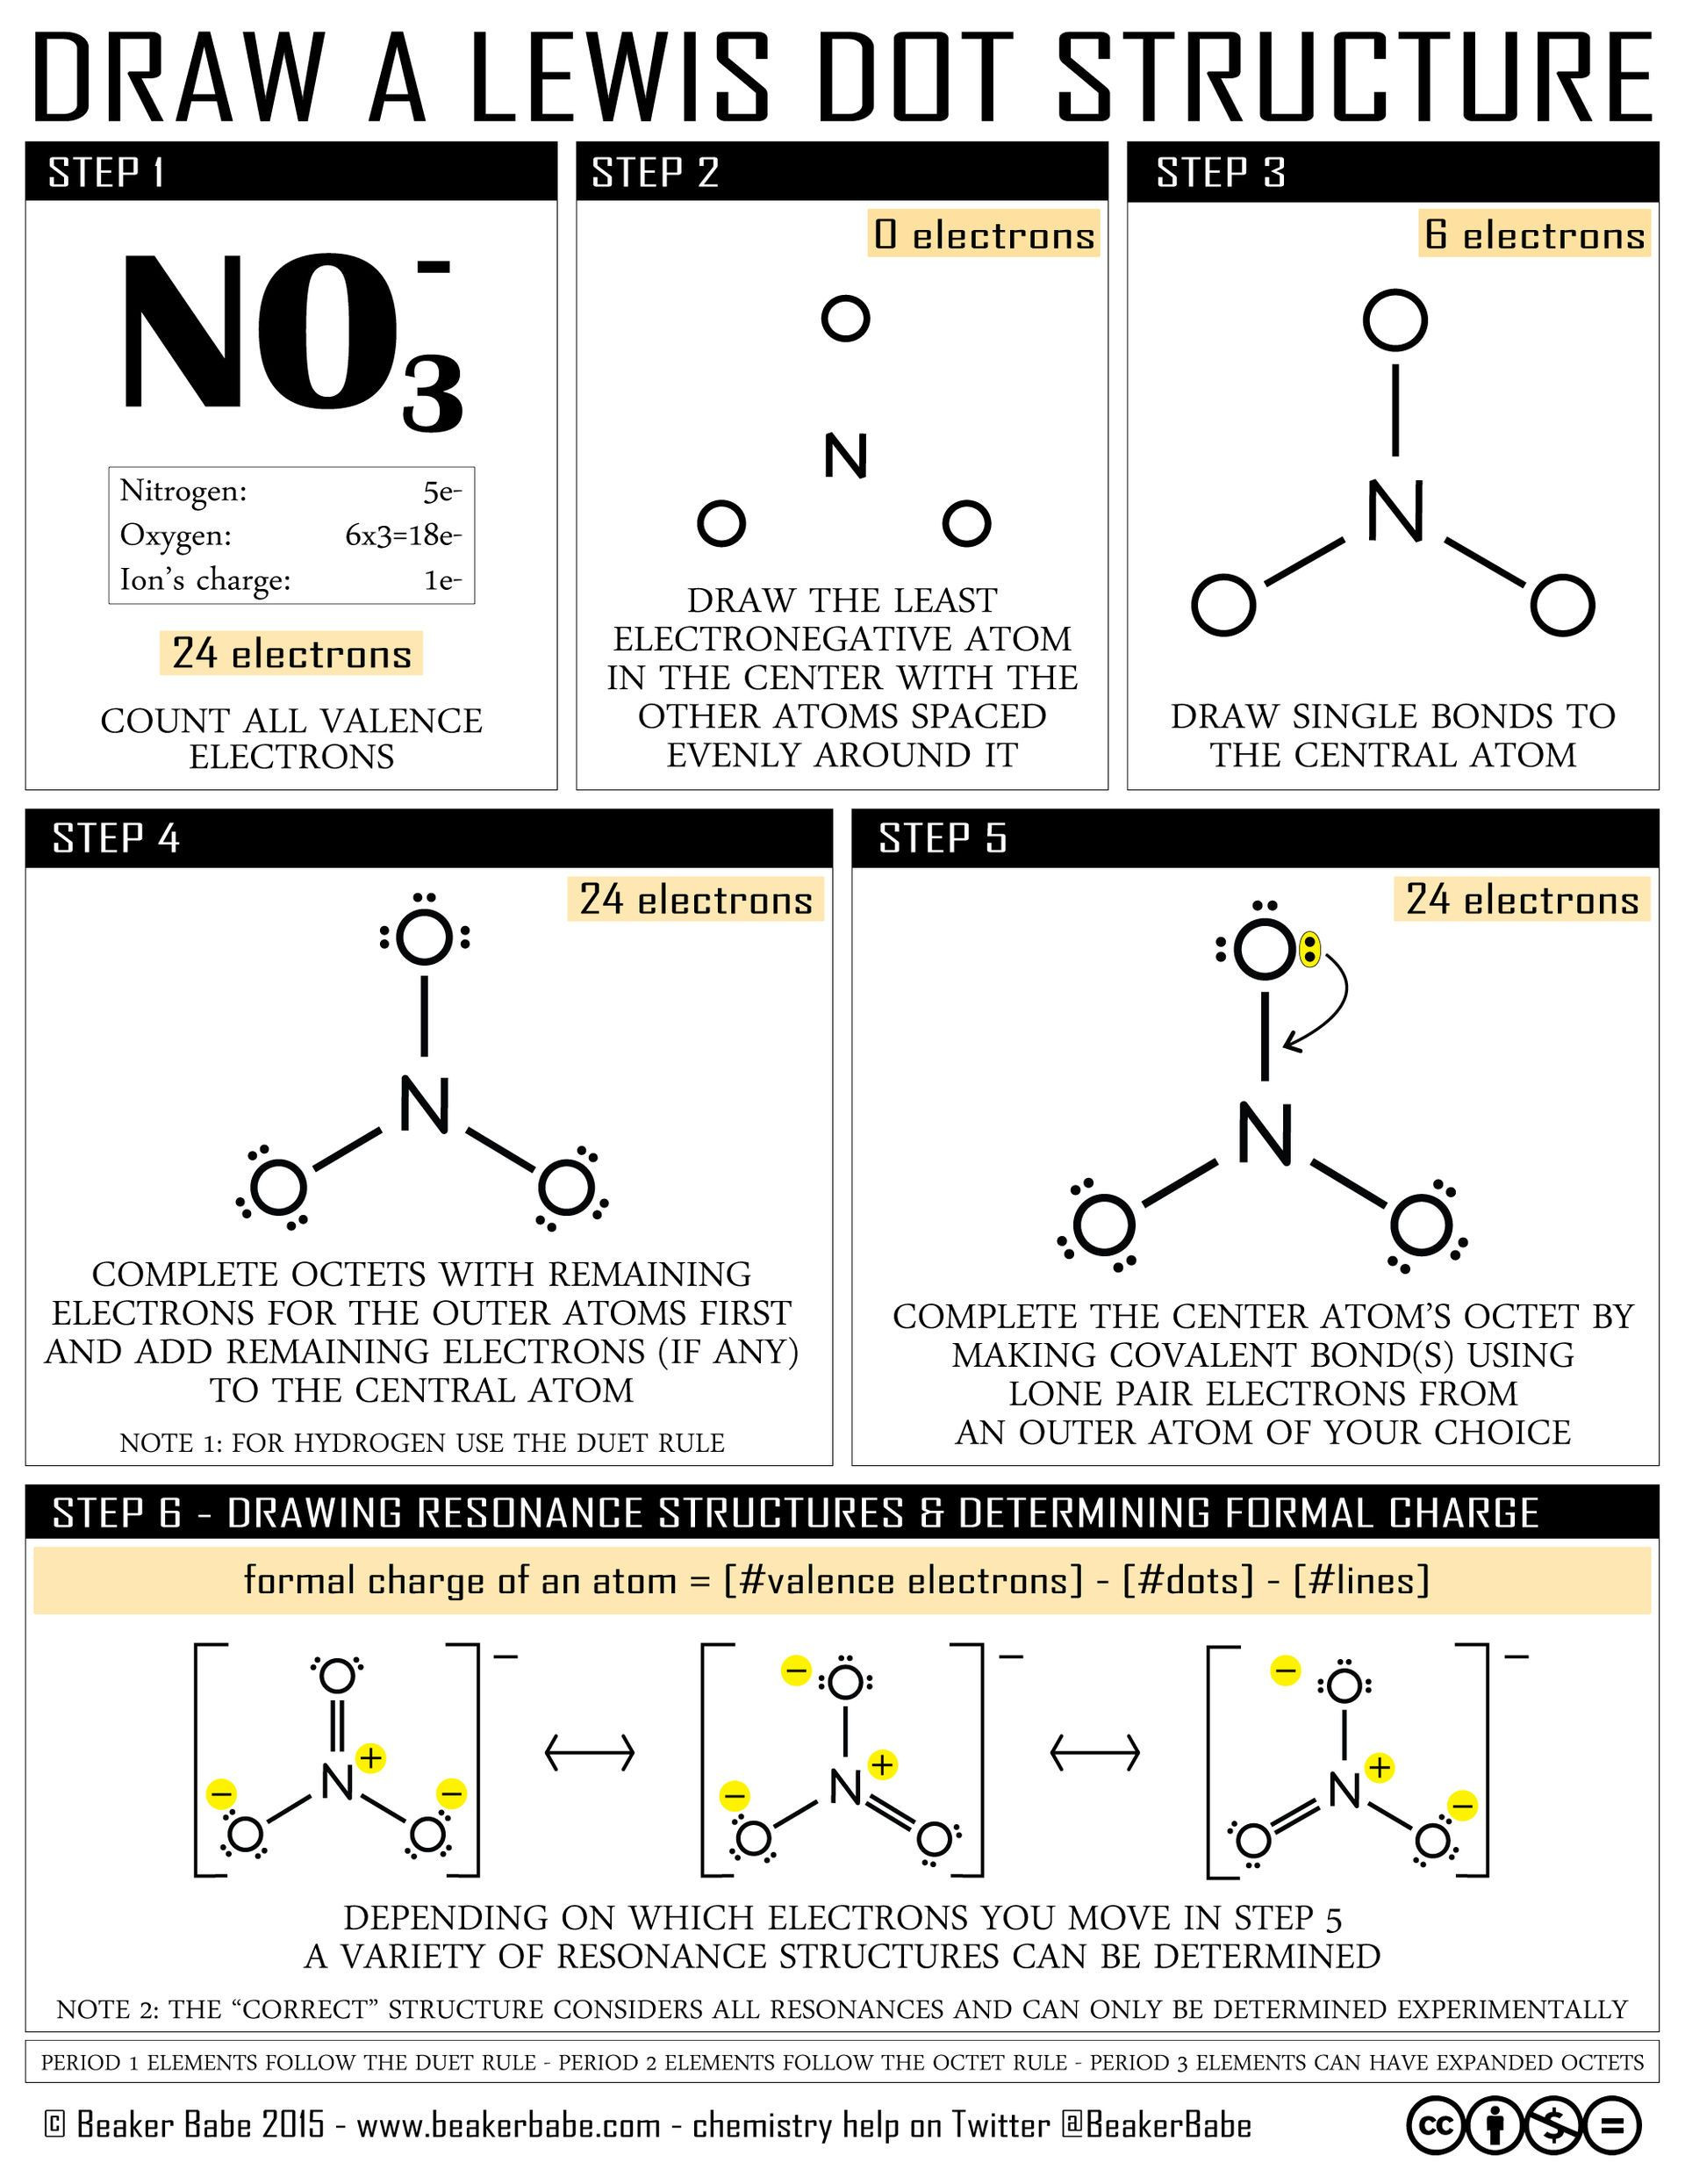 Drawing Lewis Structures Worksheet A Simple Guide for Learning How to Draw Lewis Dot Structures